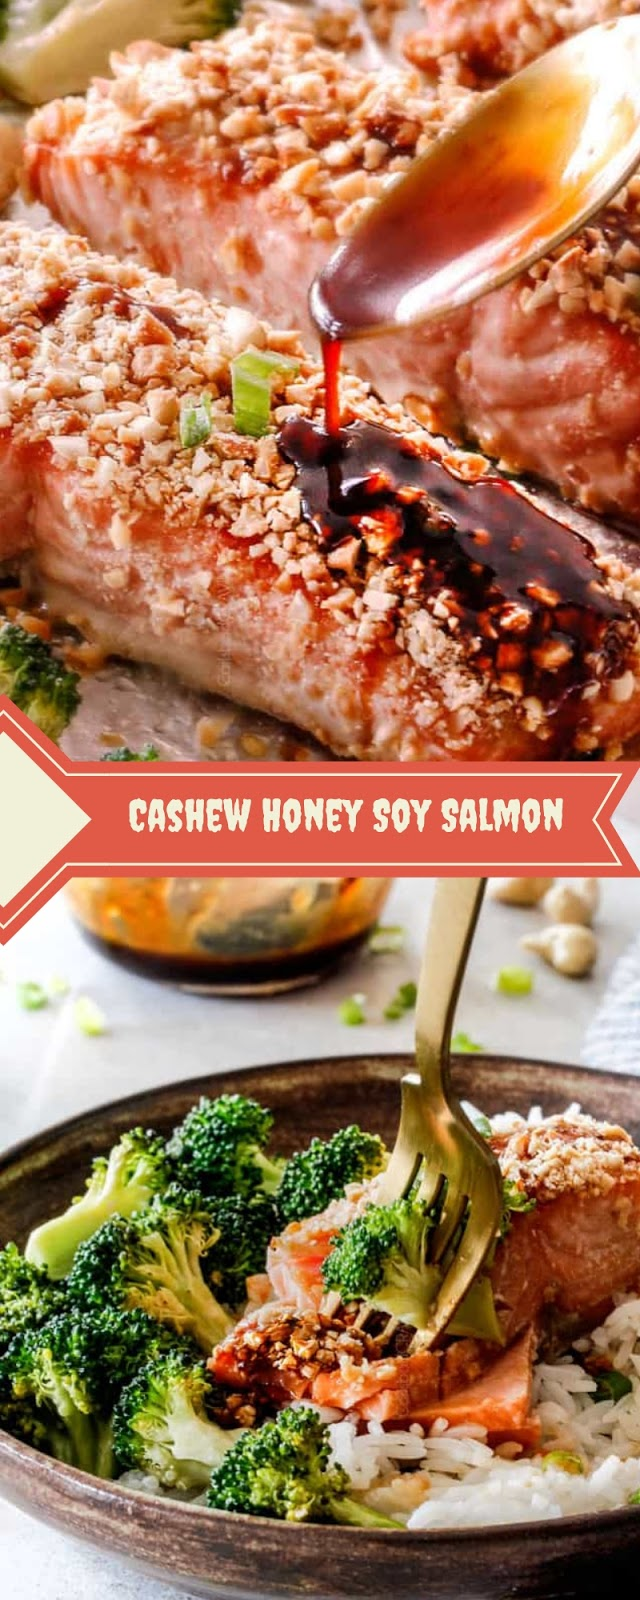 Cashew Honey Soy Salmon